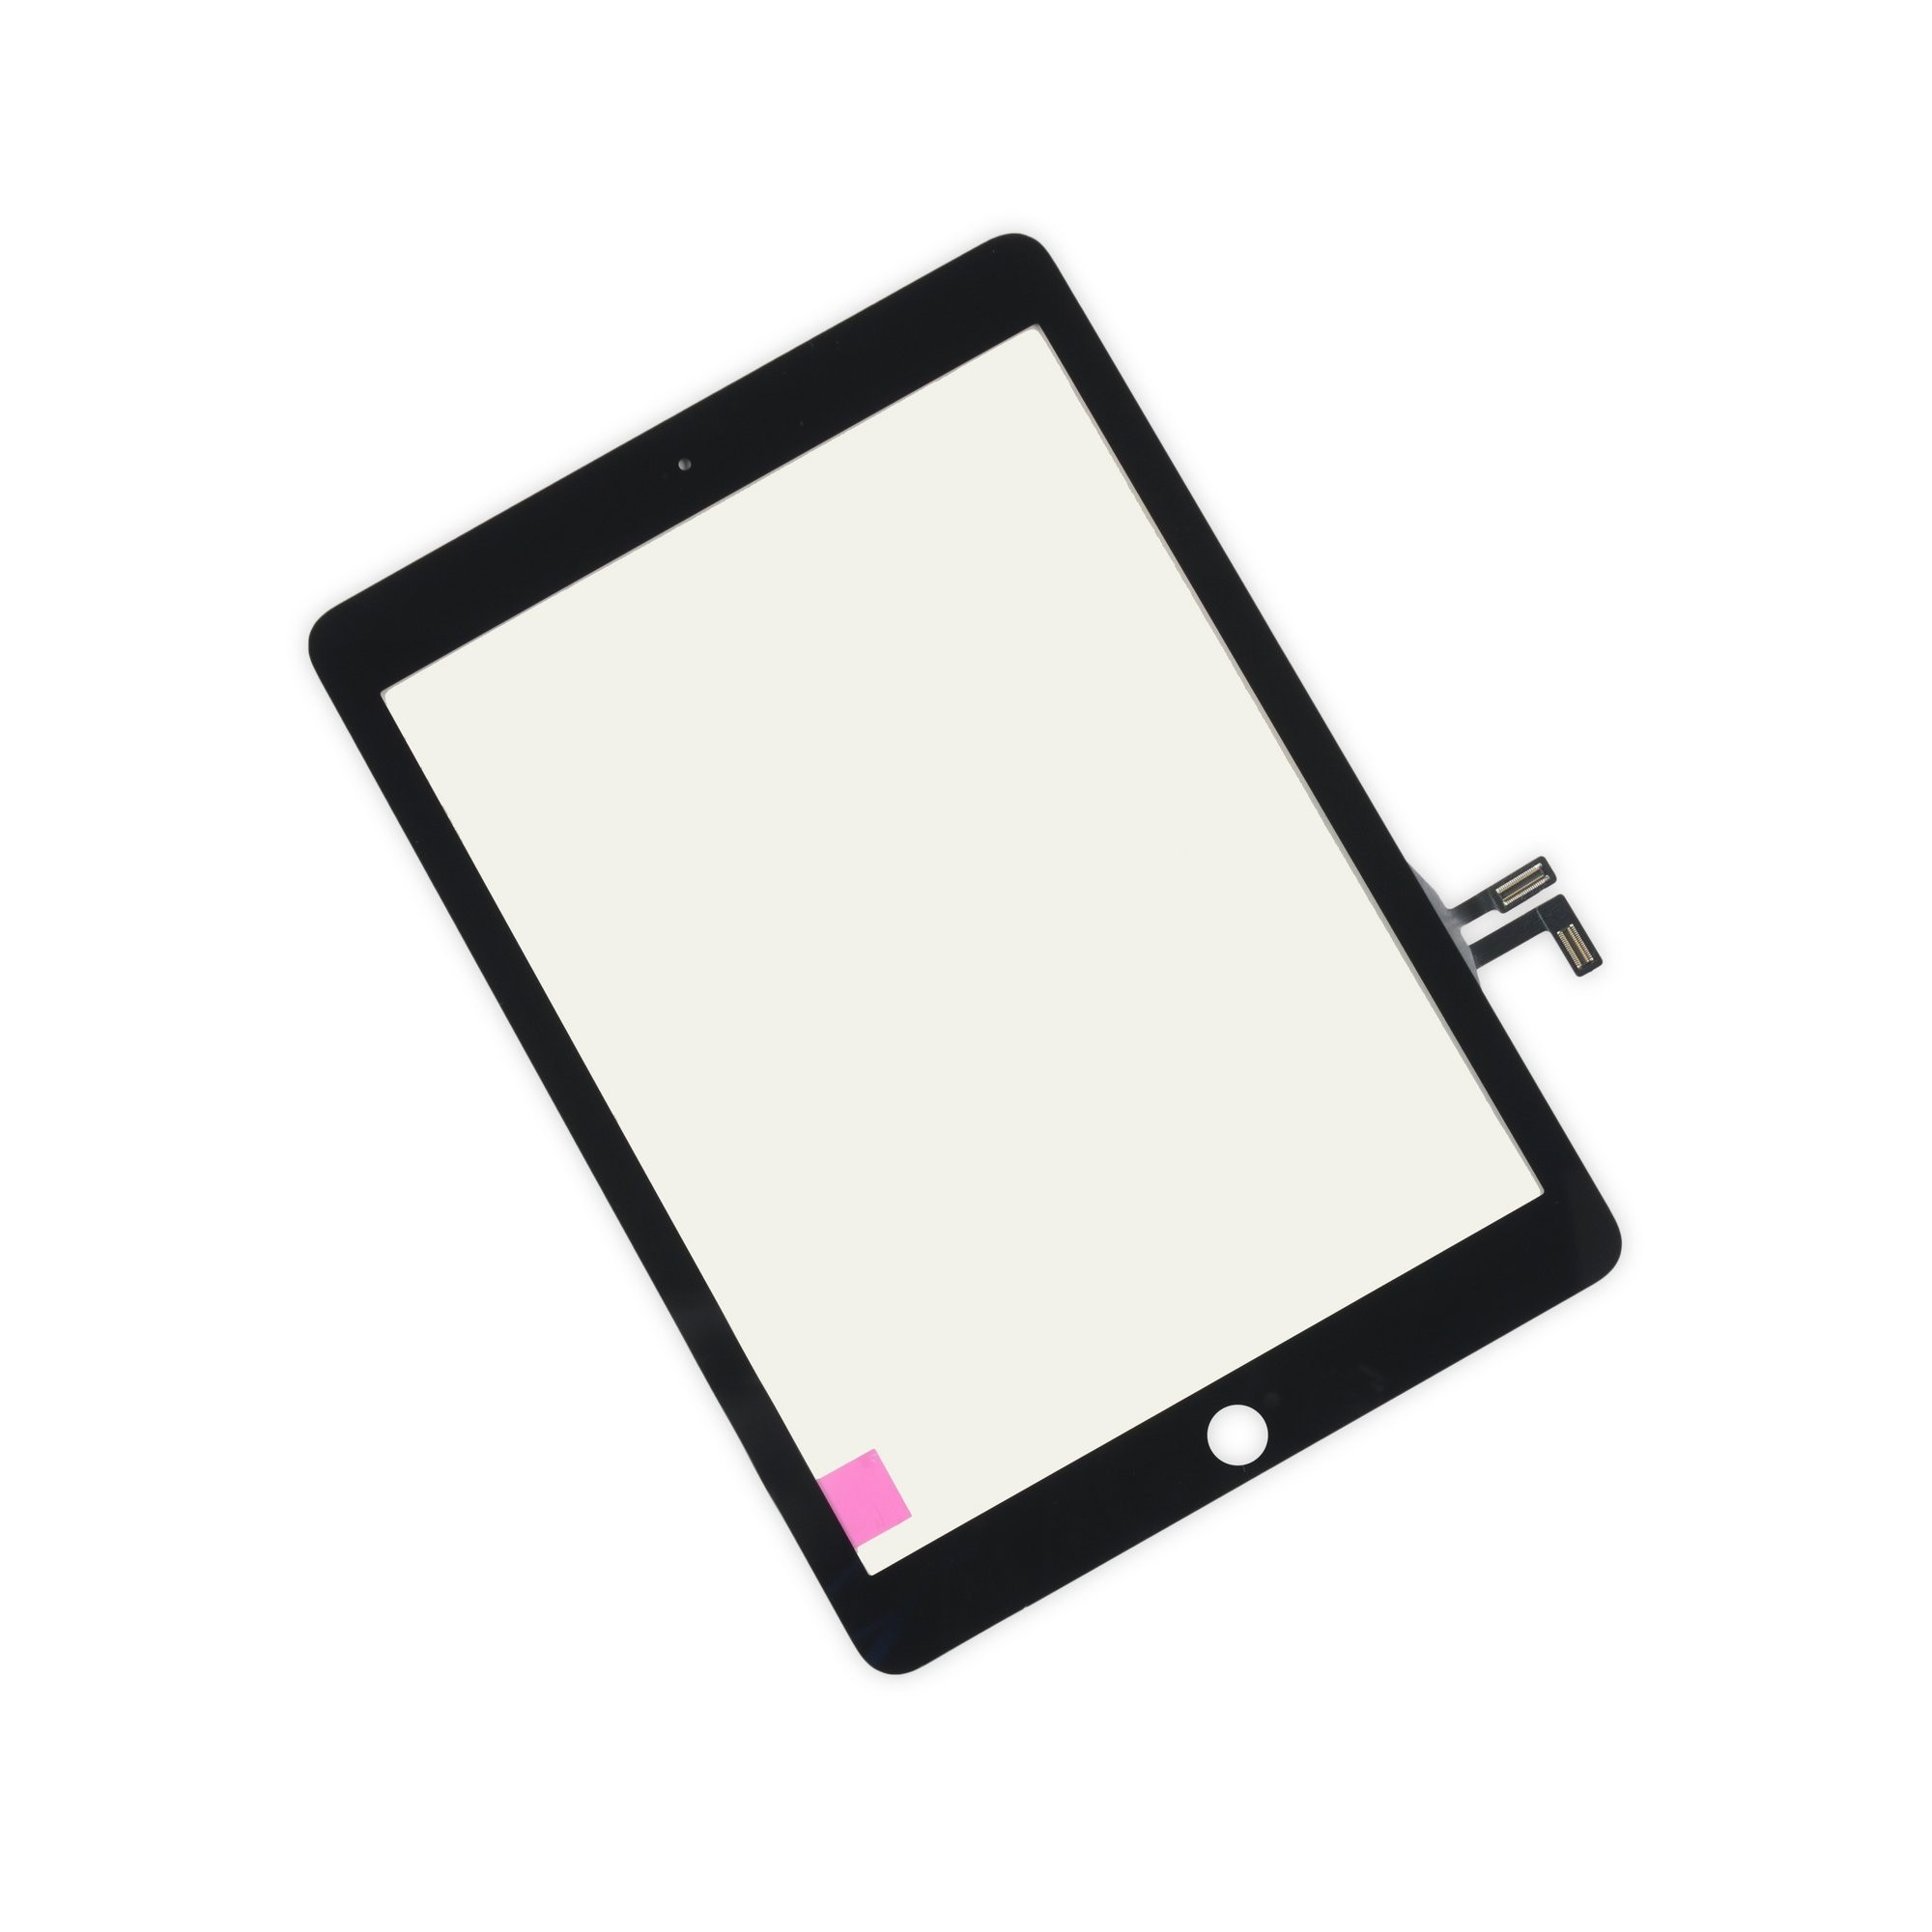 **DISCONTINUED** iFixit iPad 5 Front Glass/Digitizer Touch Panel, New, Fix Kit - Black, IF128-000-9